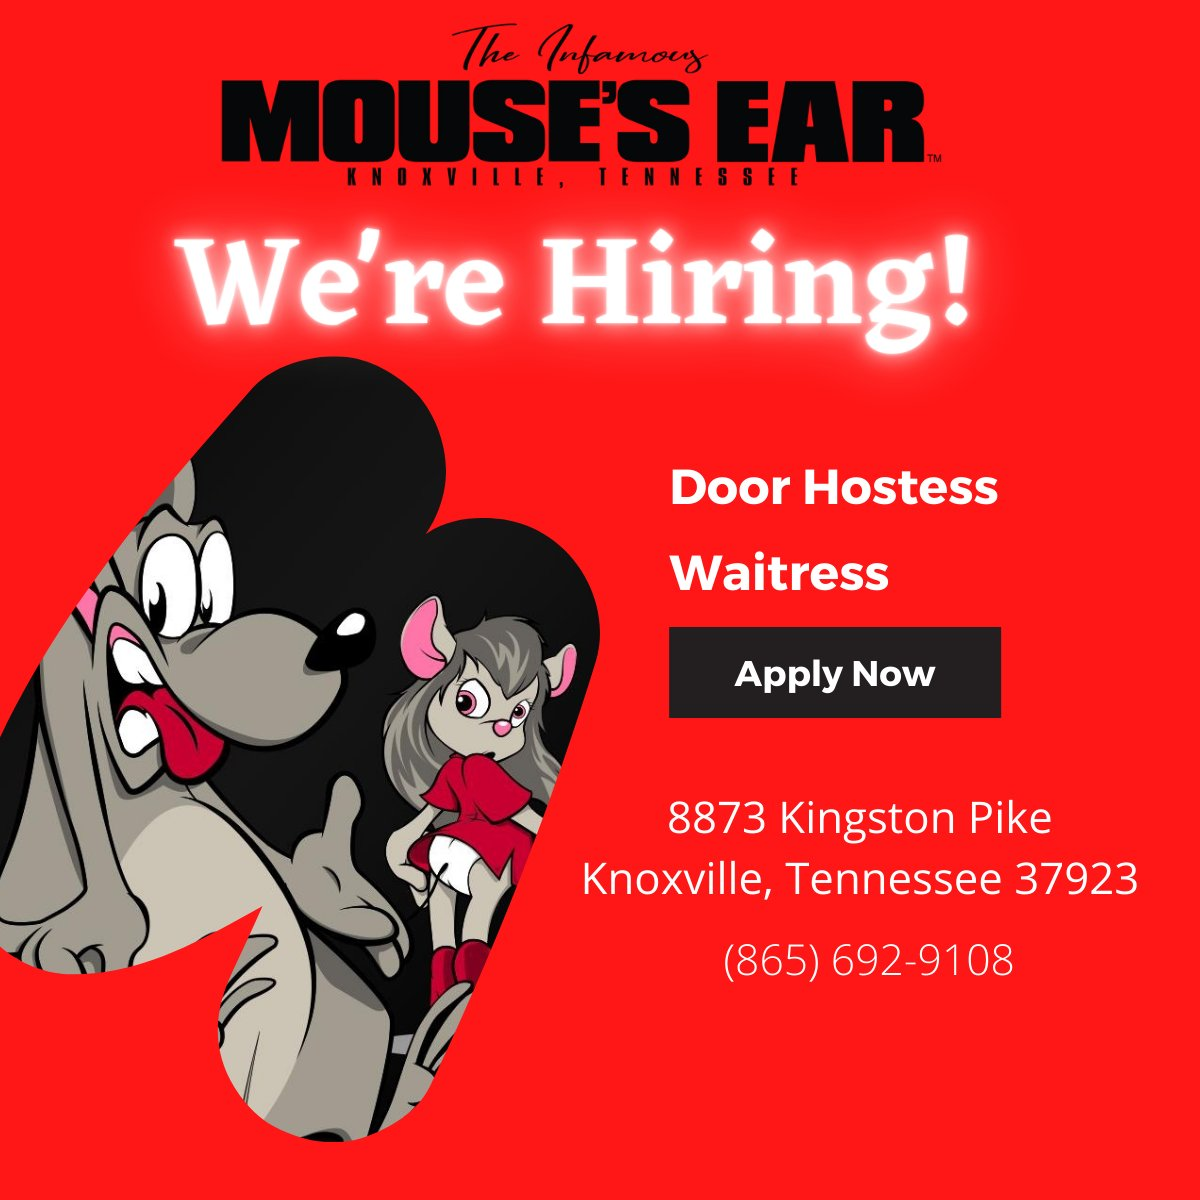 We're hiring! We need waitresses and a door hostess. Apply in person, any time we are open. . . . #NowHiring #EmploymentOpportunity #Waitress #Hostess #Hospitality #Fun #MousesEar #Knoxville #StripJoint